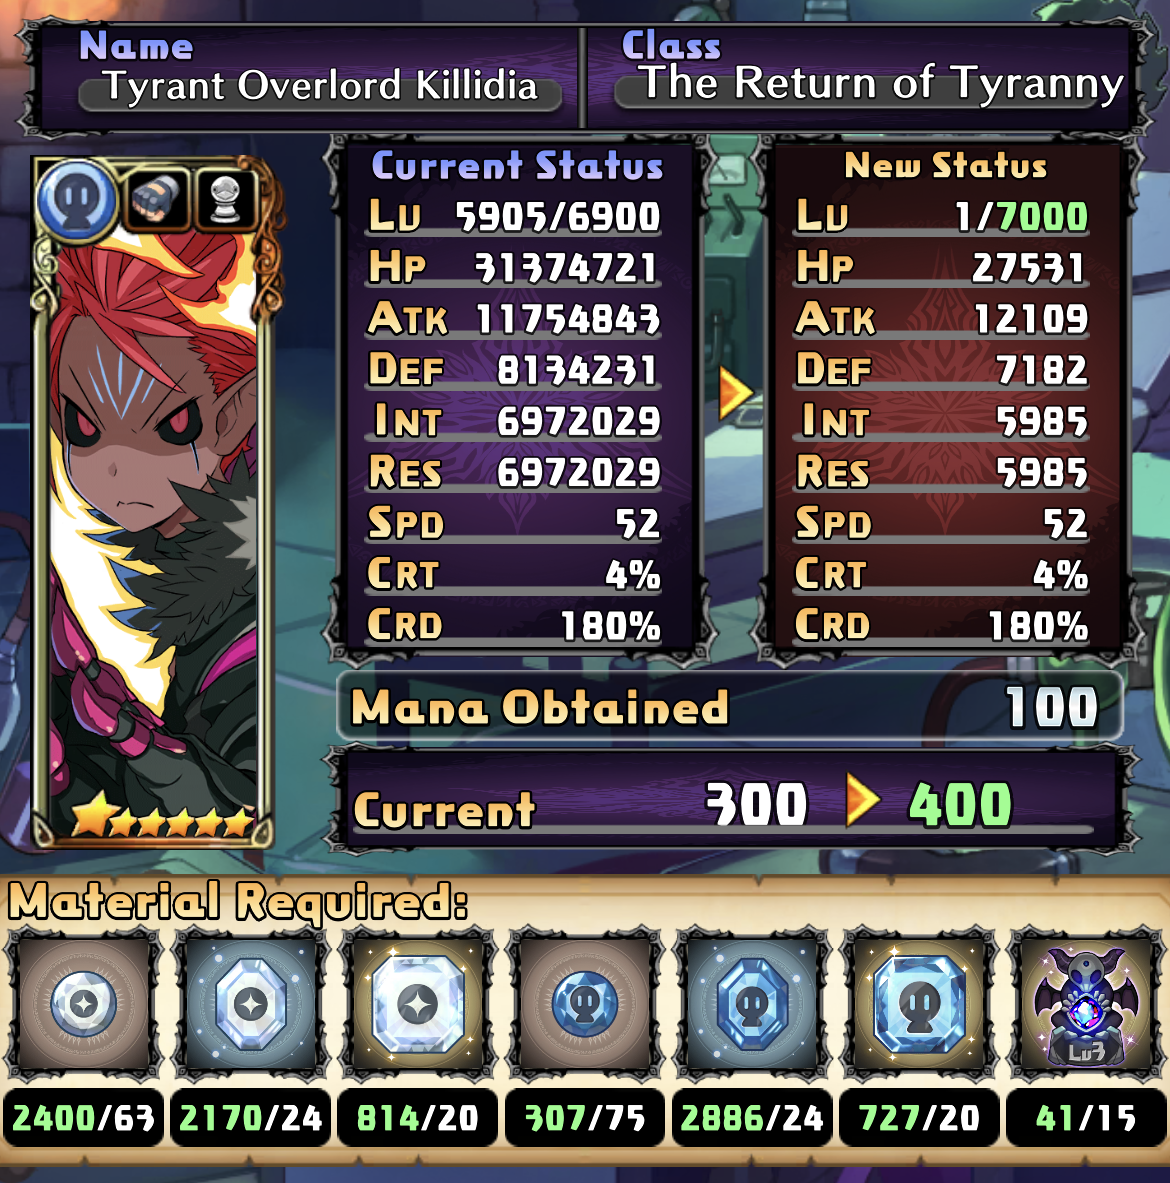 Best Place to Level in Disgaea RPG 5